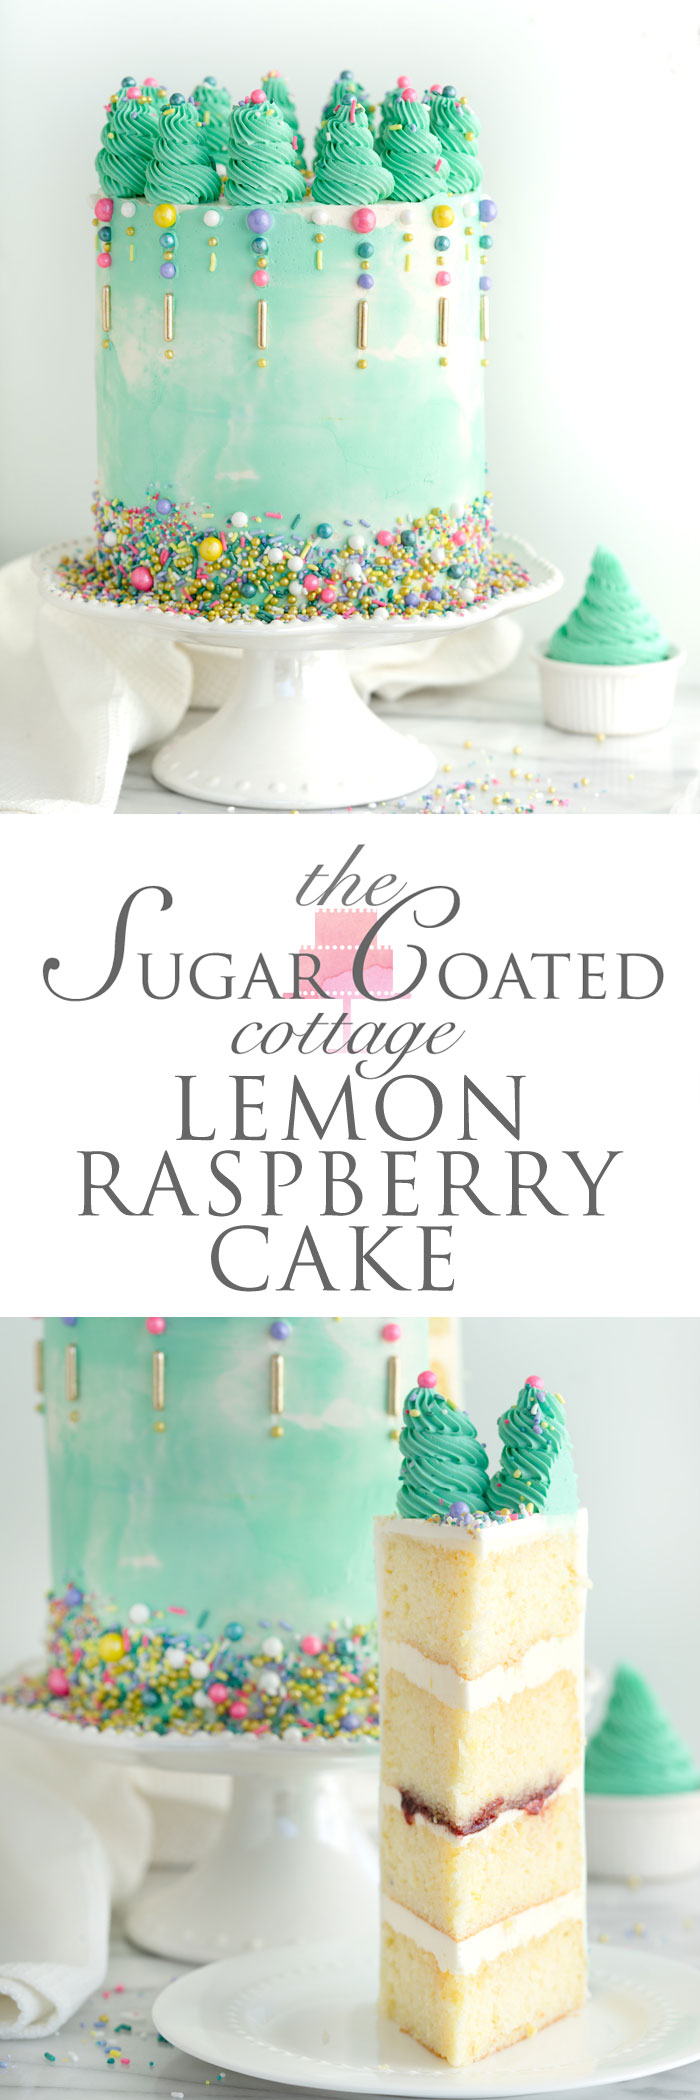 Lemon Raspberry Cake Recipe. Plus my classy cake hacks! | thesugarcoatedcottage.com #cake #cakedecorating #cakemixhack #recipe #buttercream #weddingcake